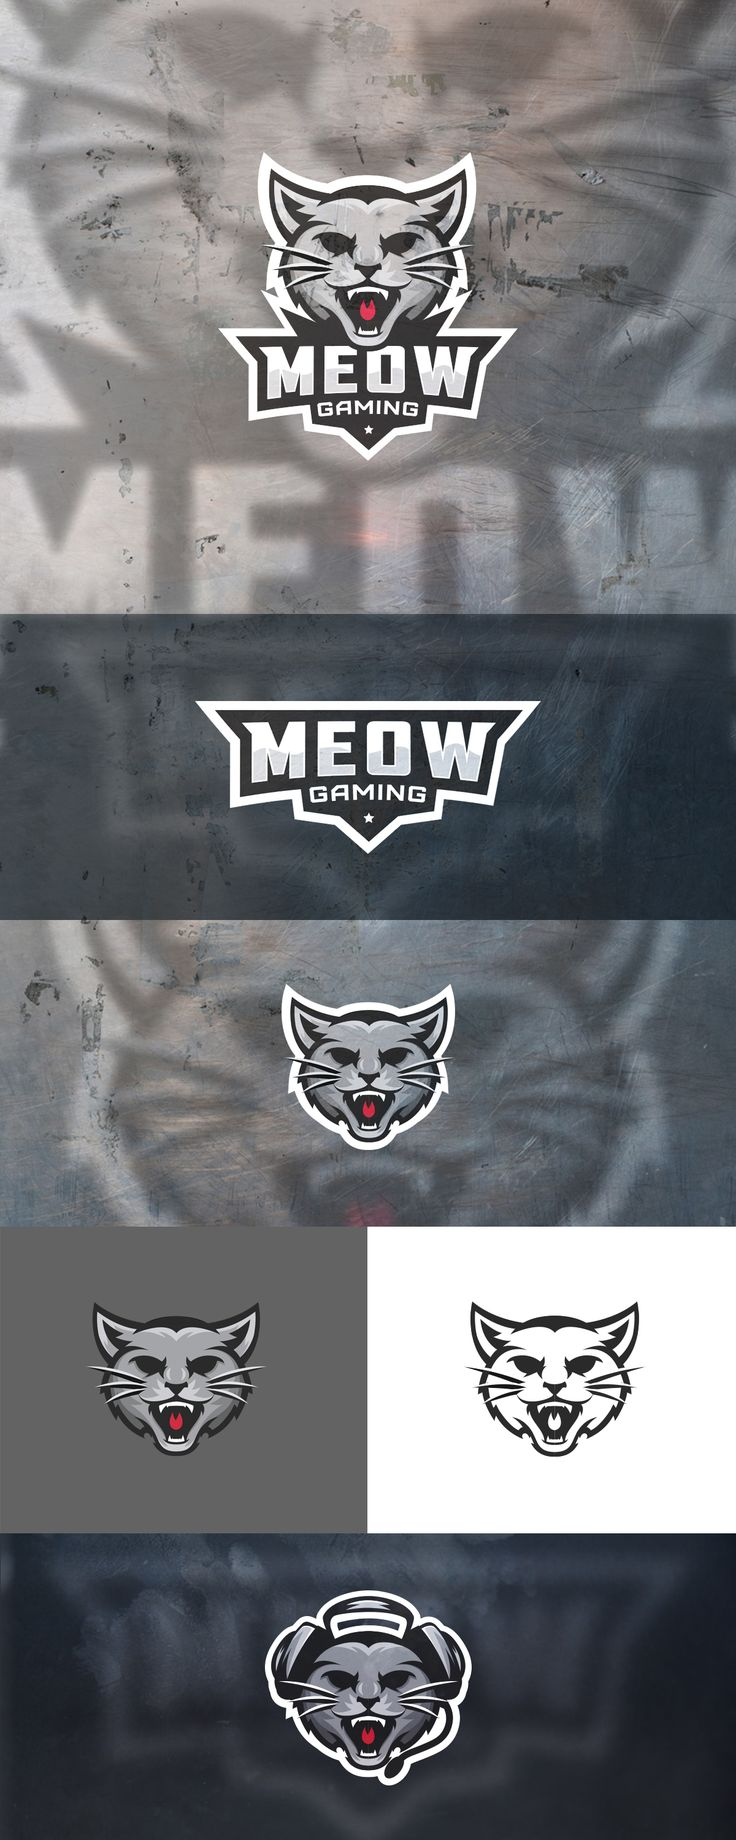 Meow Gaming on Behance